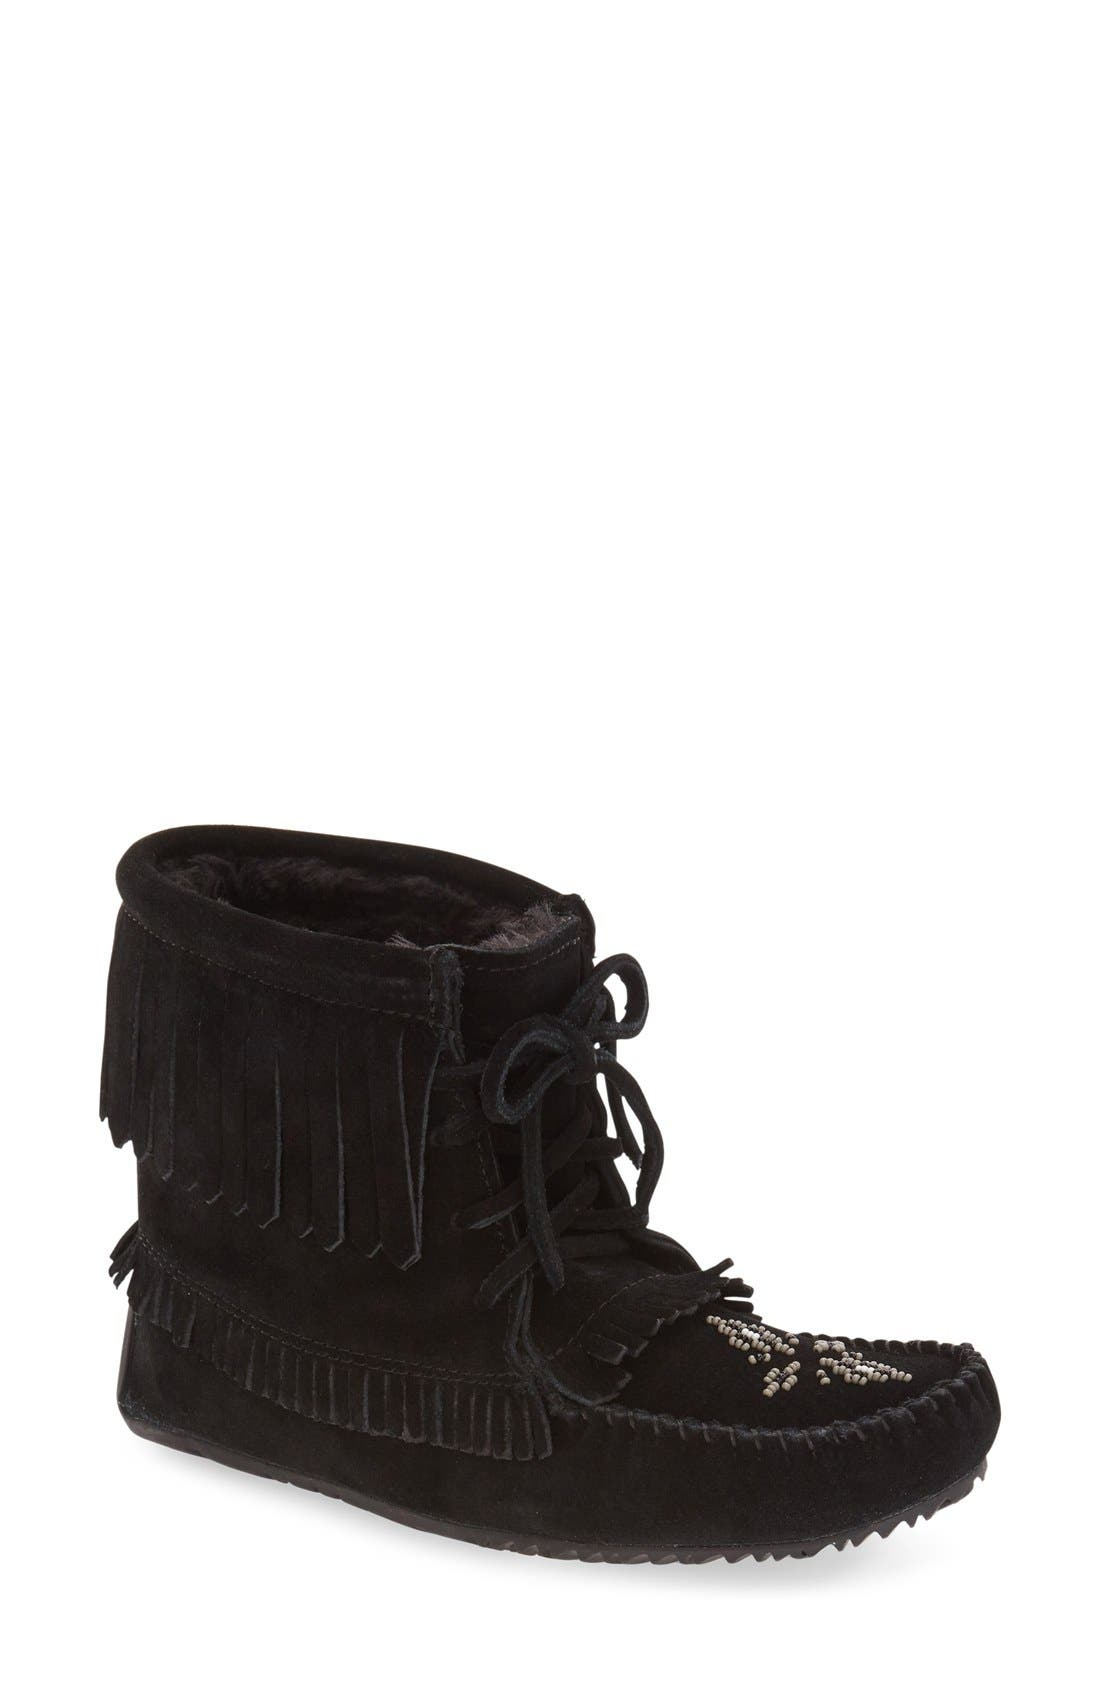 'Harvester' Moccasin,                         Main,                         color, Black Suede